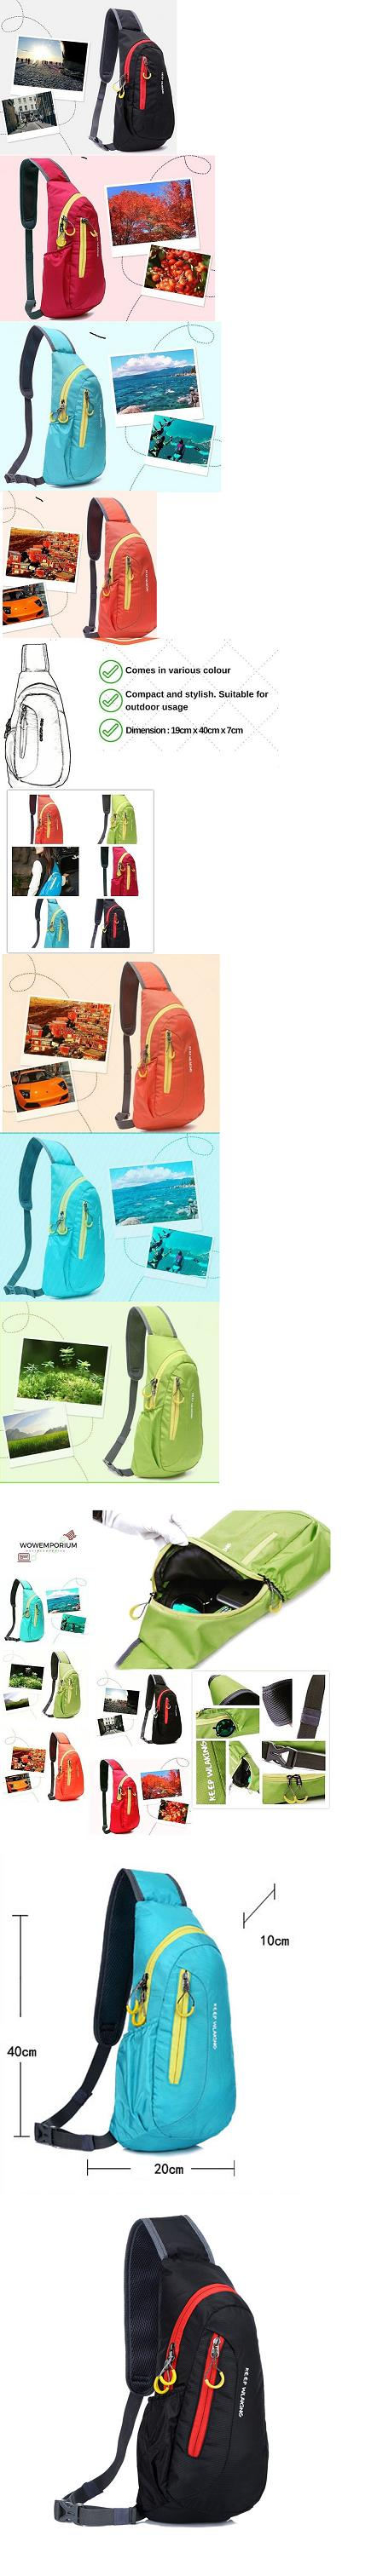 Free Knight Sling Bag 5 Litre Crossbody Sport Cycling Bag